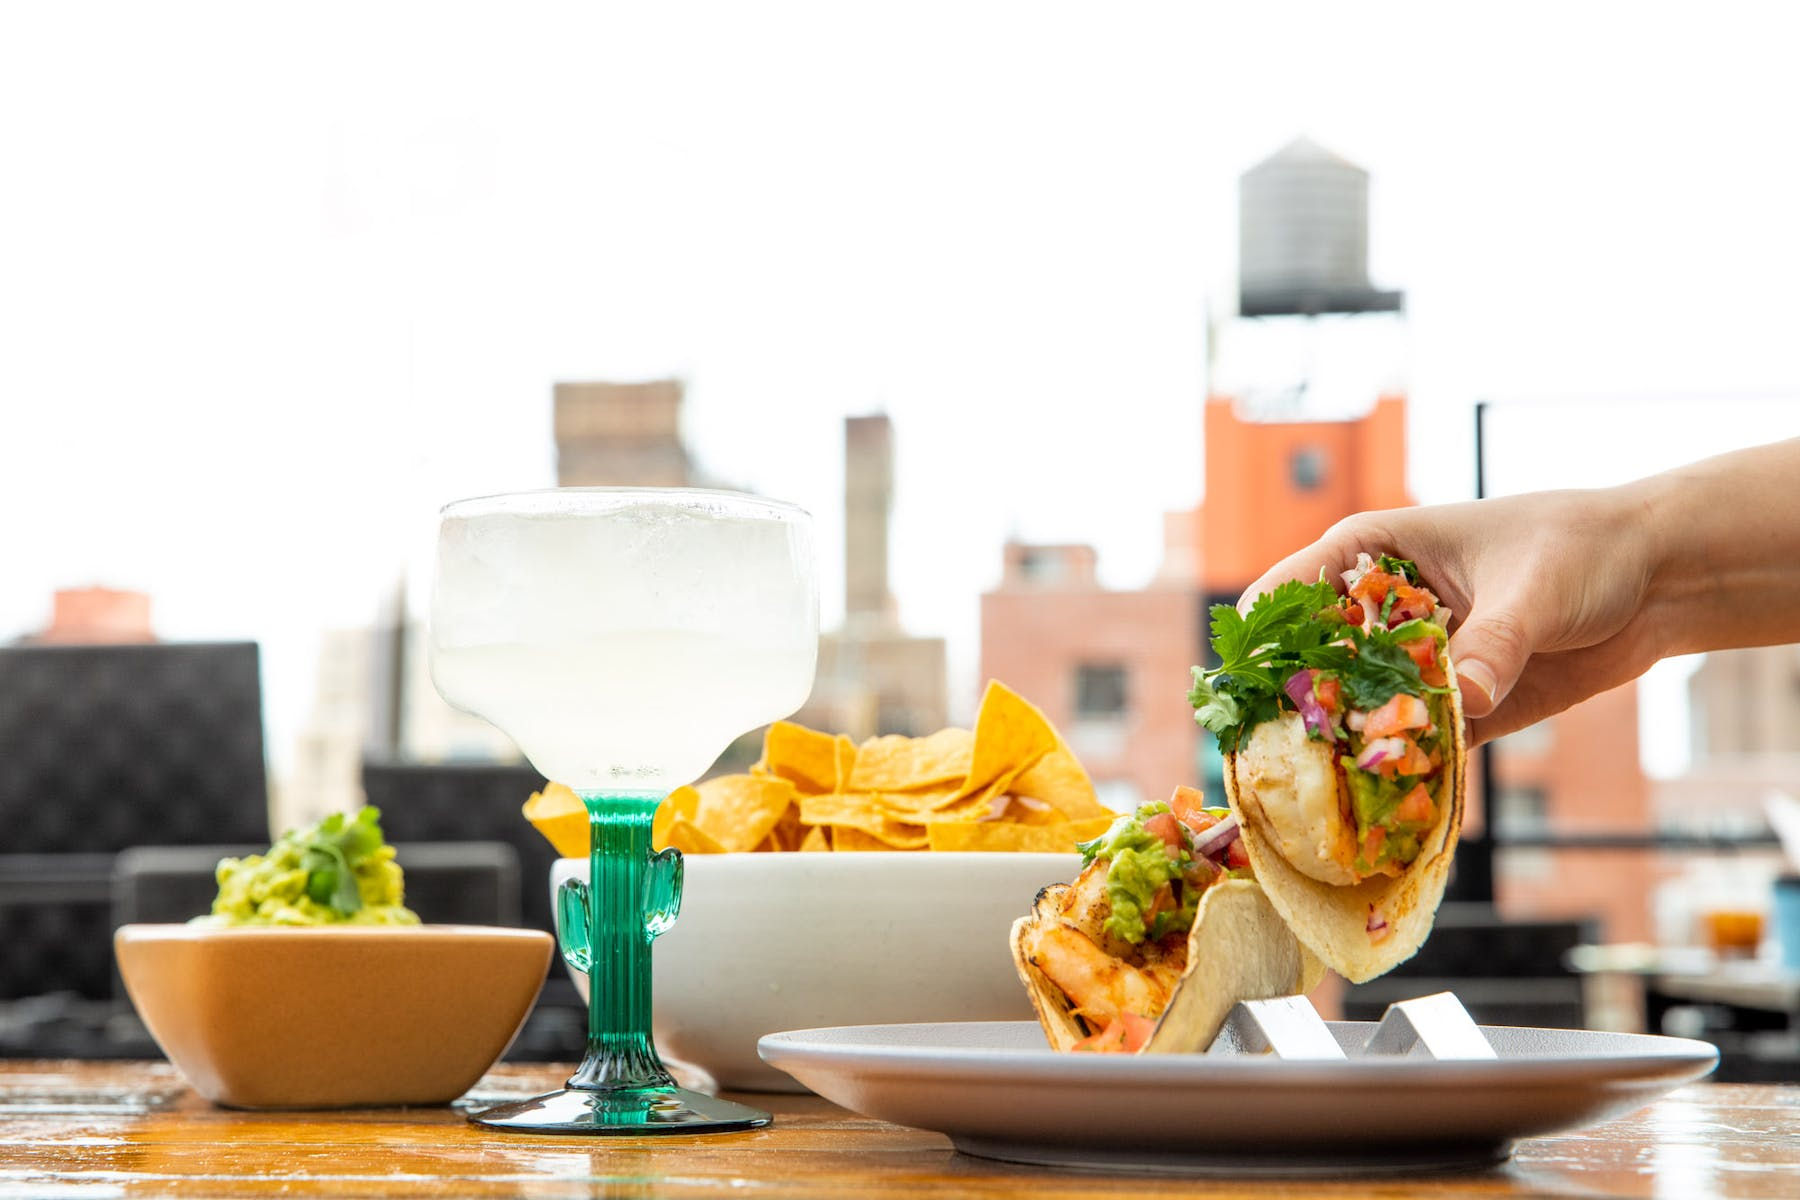 A hand holding a taco with a bowl of chips and guac on the side, and a cocktail